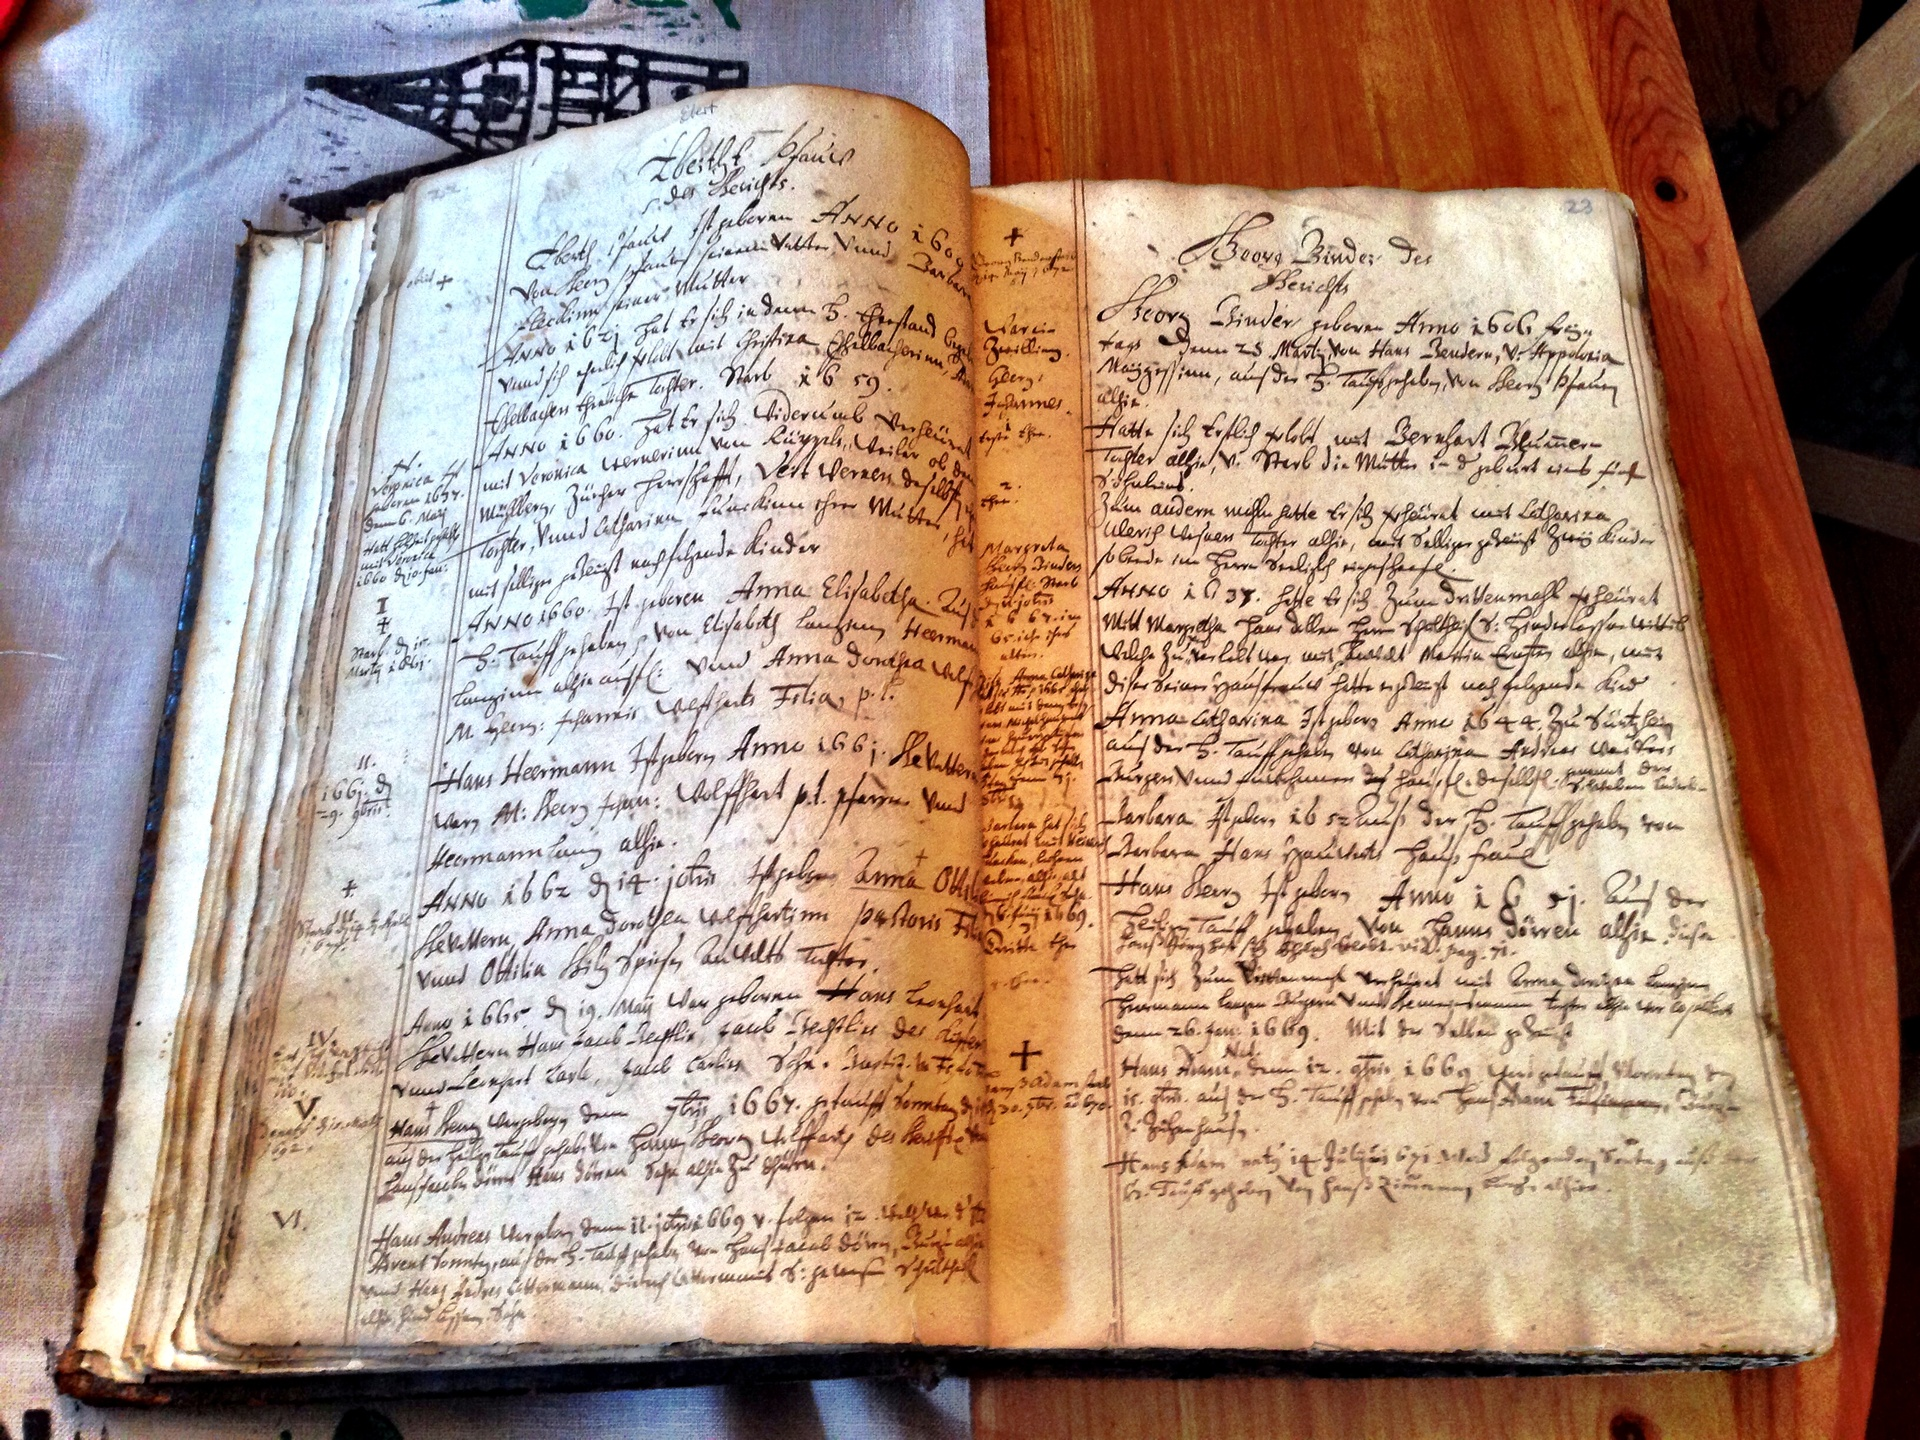 Church Book from 1600s